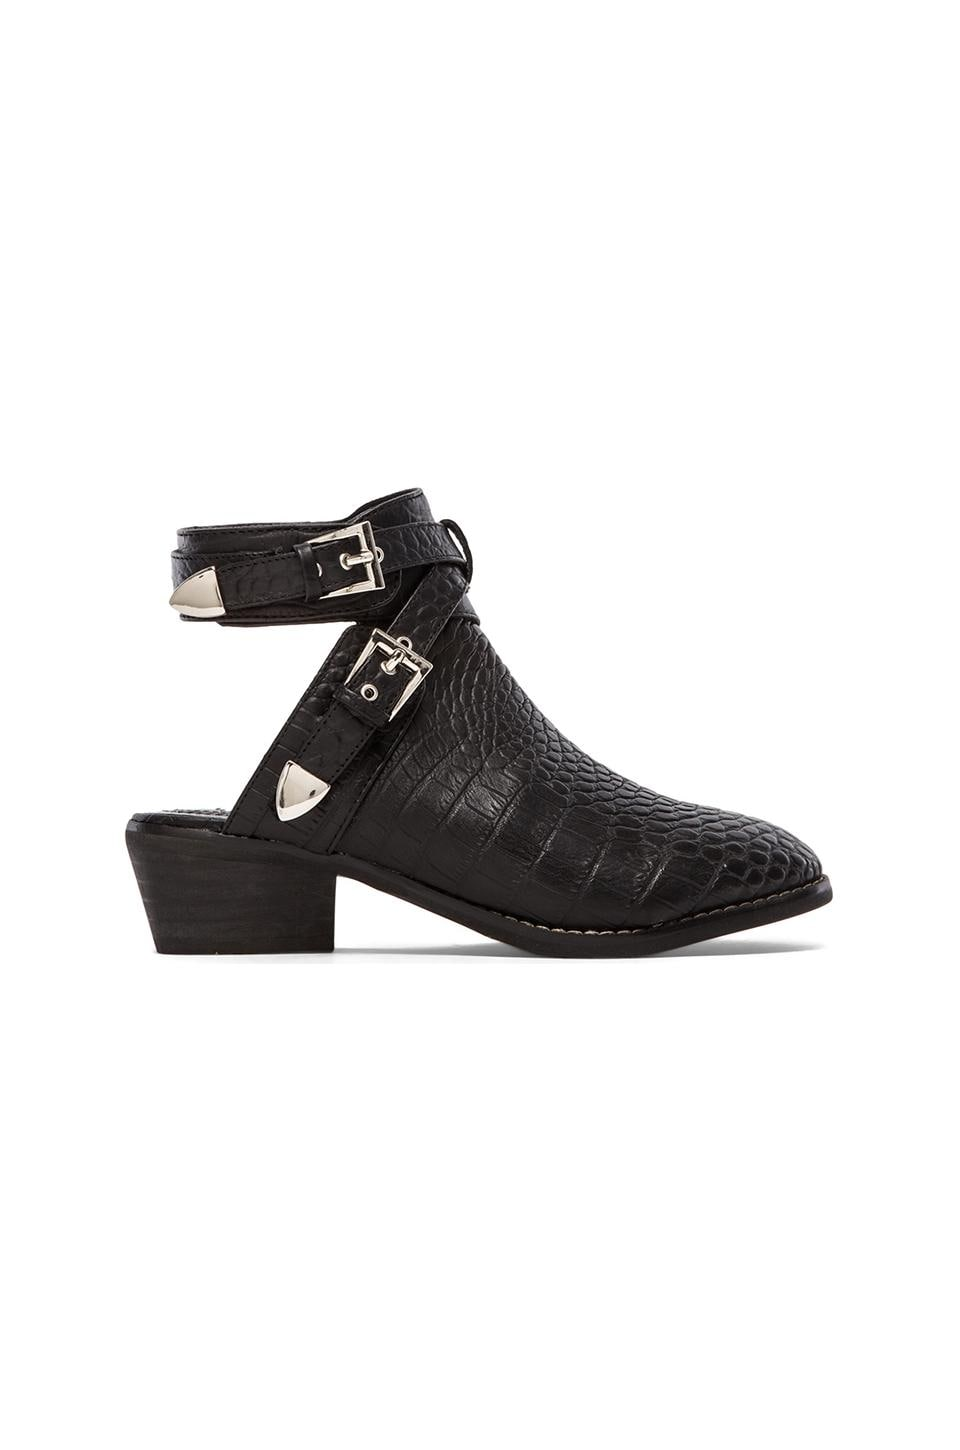 Steve Madden Moscow Bootie in Black Crocodile